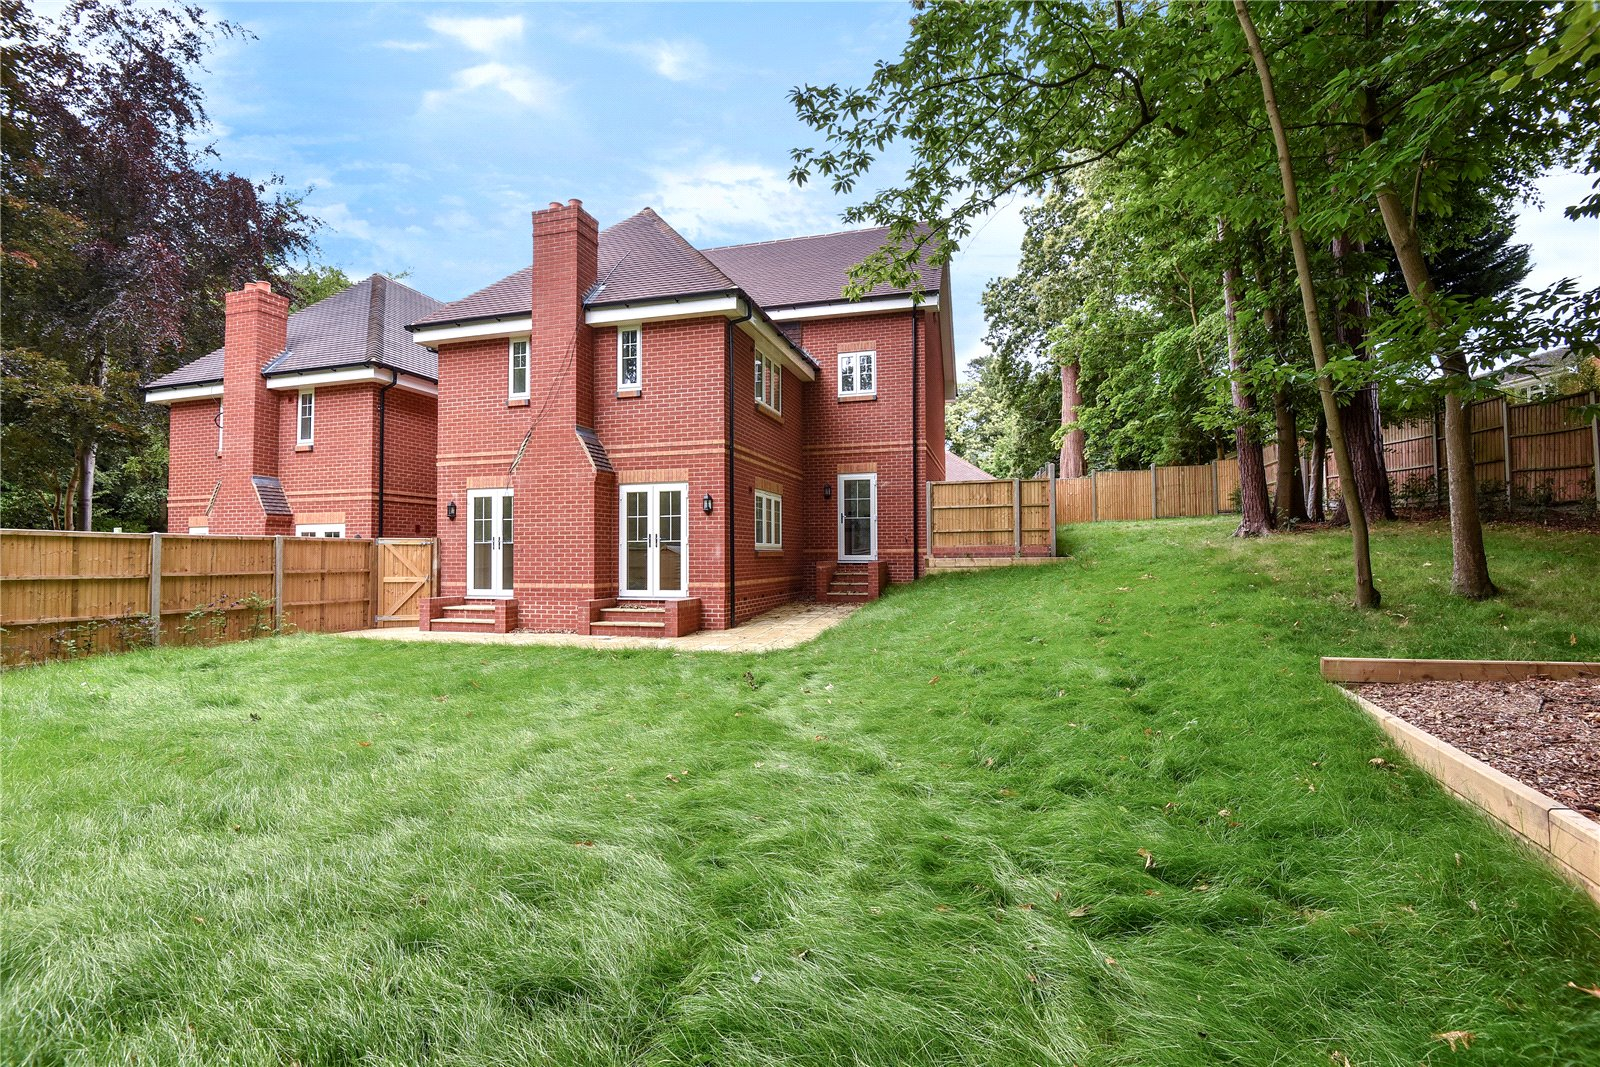 5 Bedrooms Detached House for sale in Prior End, Camberley, Surrey, GU15